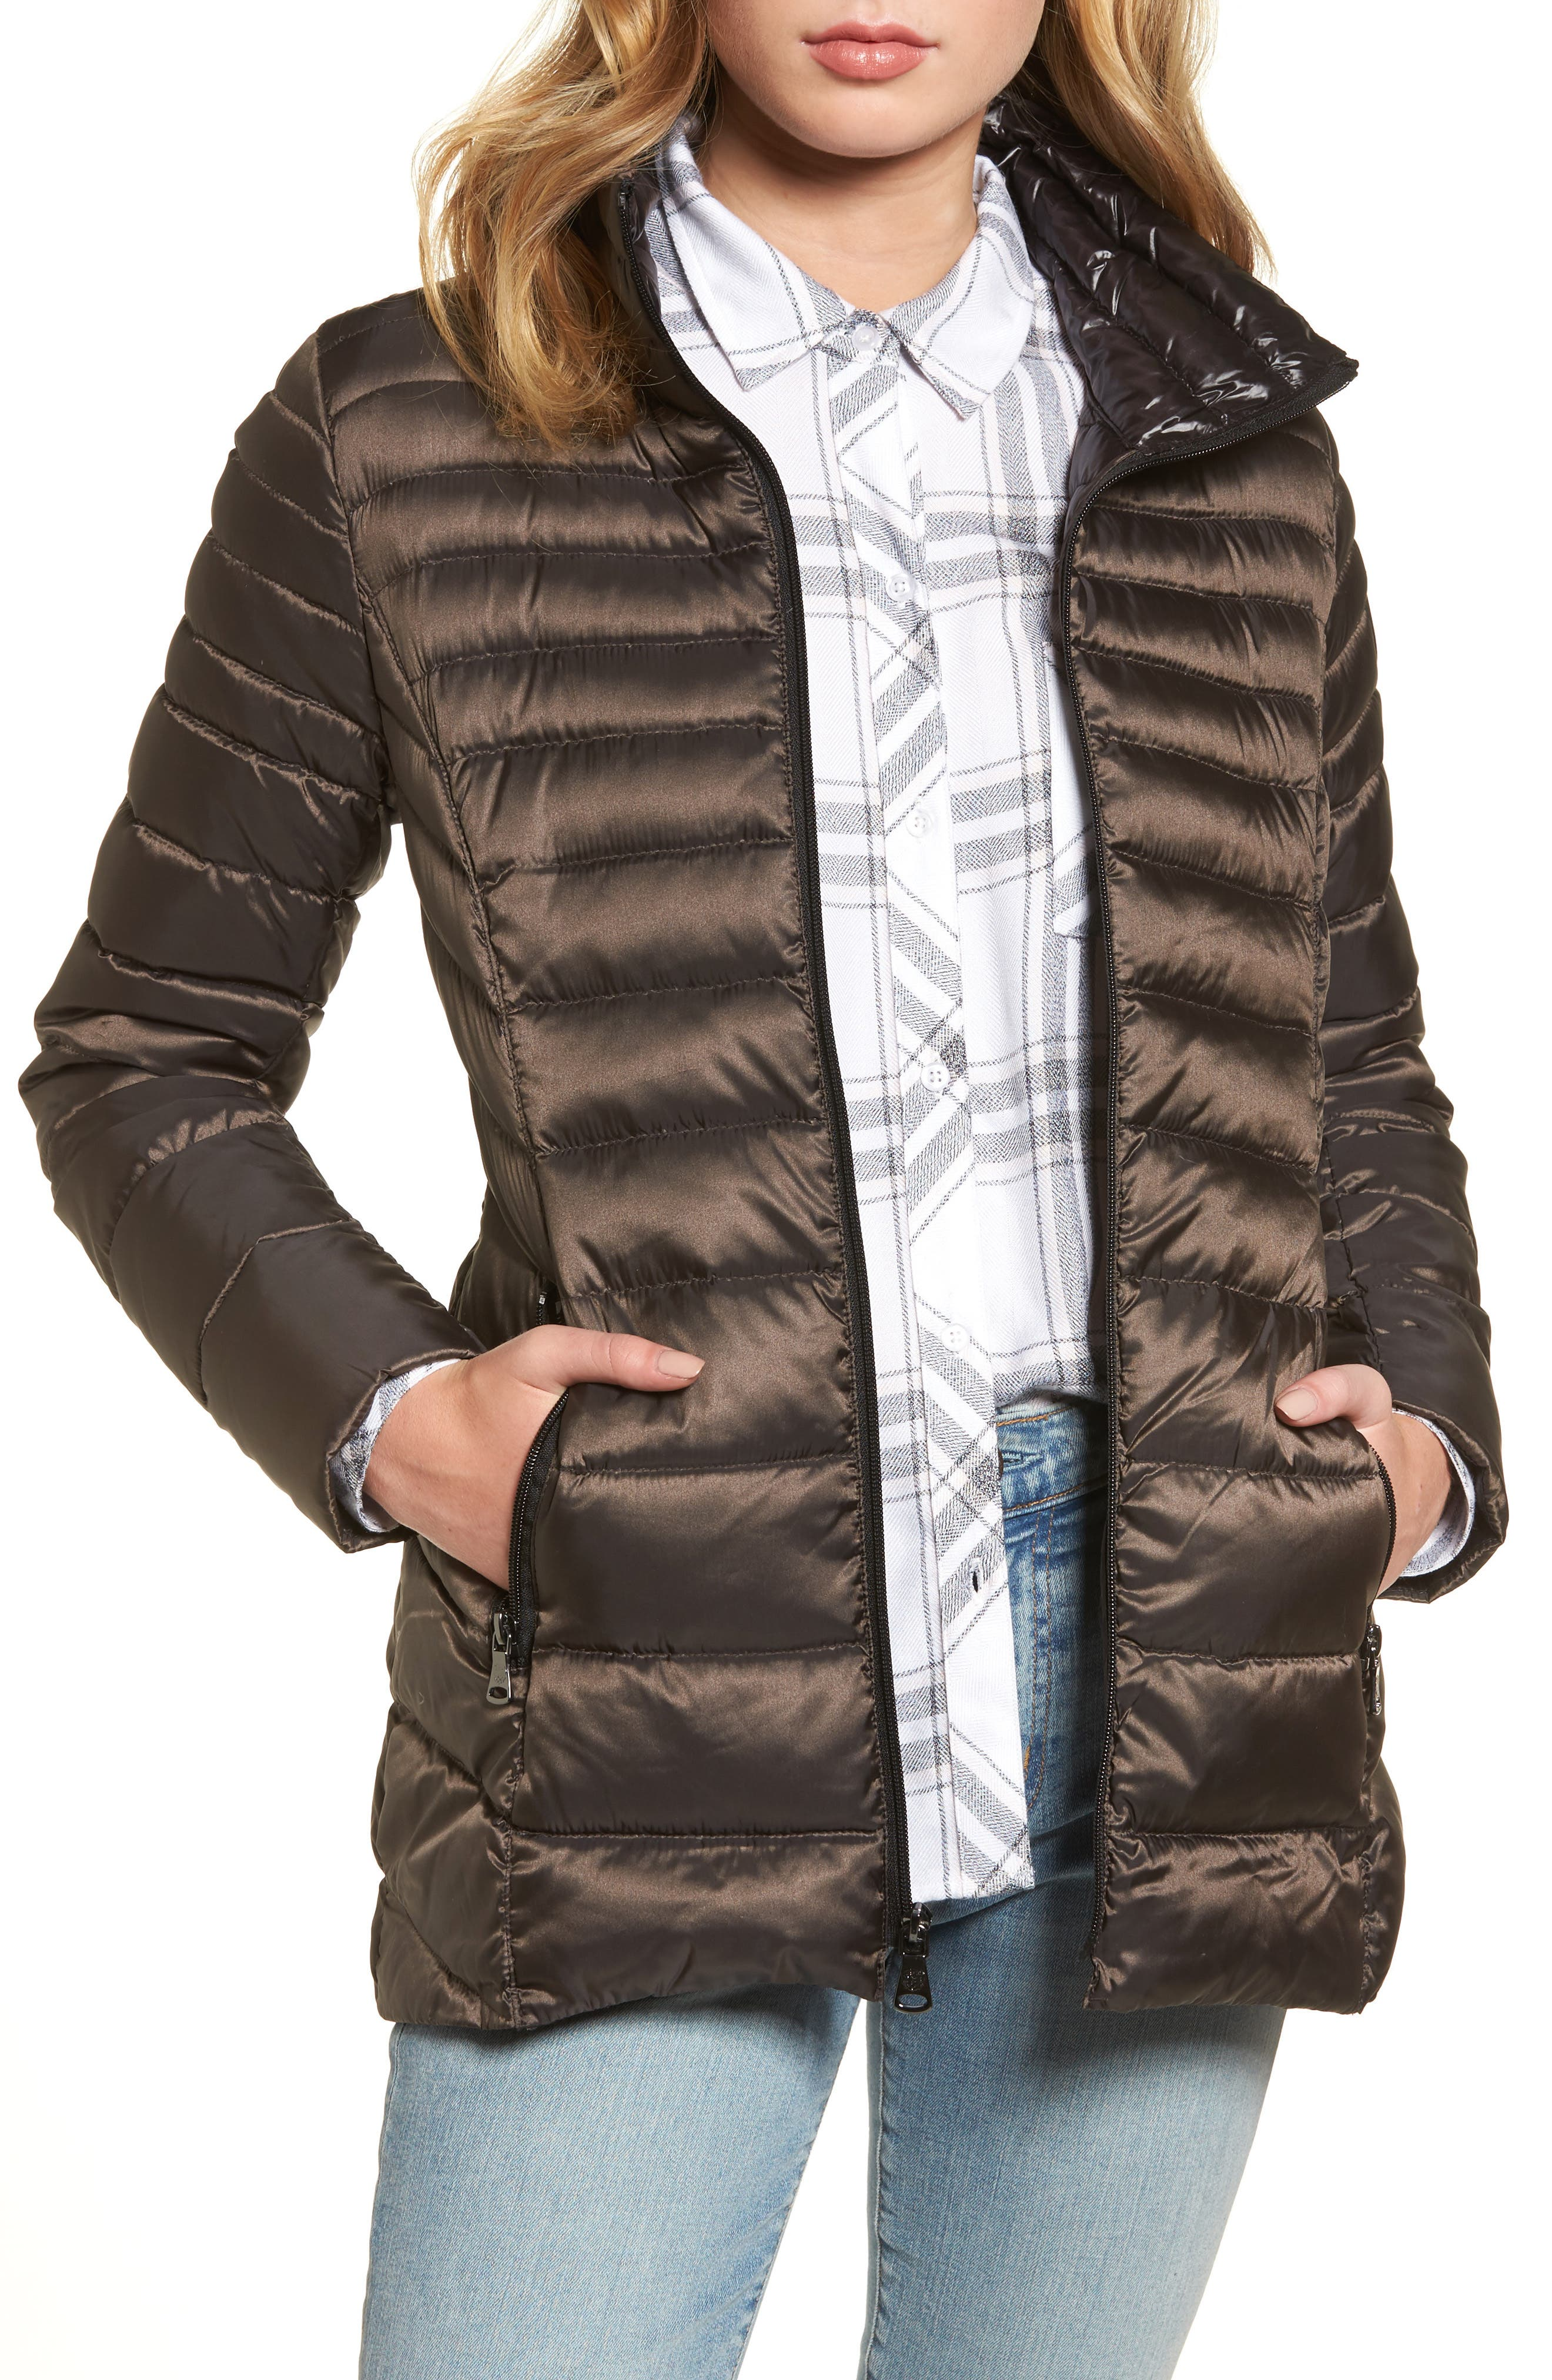 Main Image - Vince Camuto Packable Down Jacket